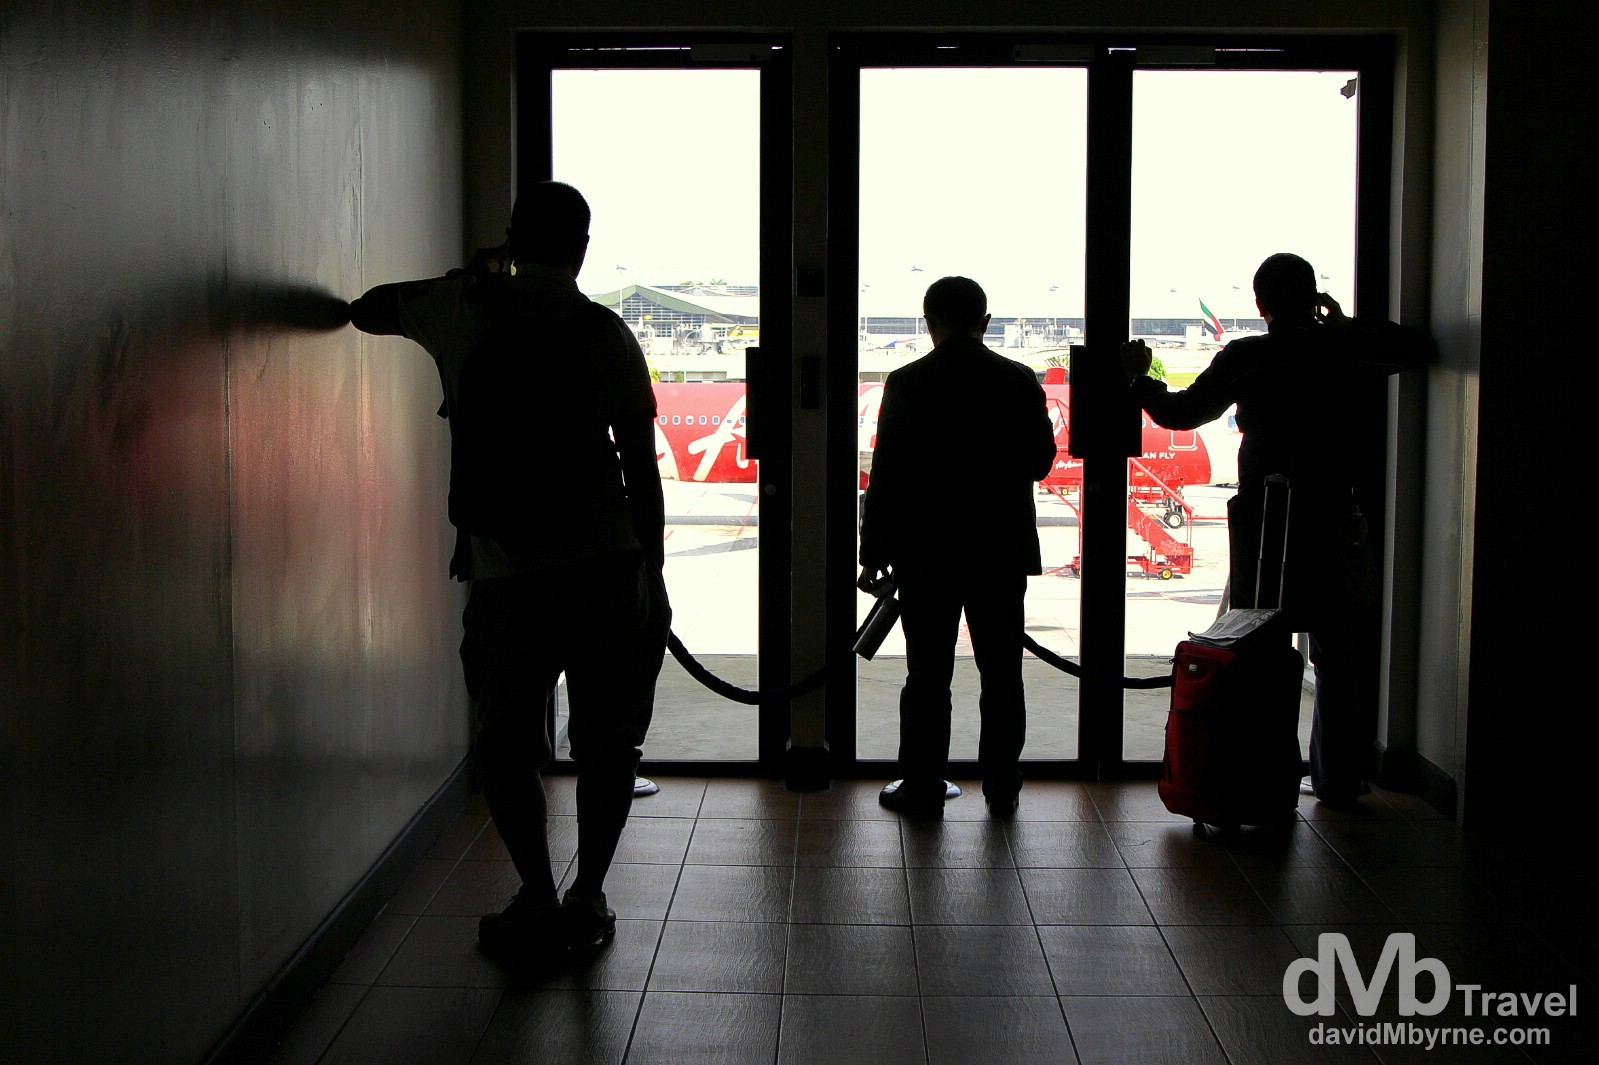 Silhouettes of transit travellers looking out onto the tarmac from the departures terminal of Kuala Lumpur International Airport, Kuala Lumpur, Malaysia. March 6th 2012.